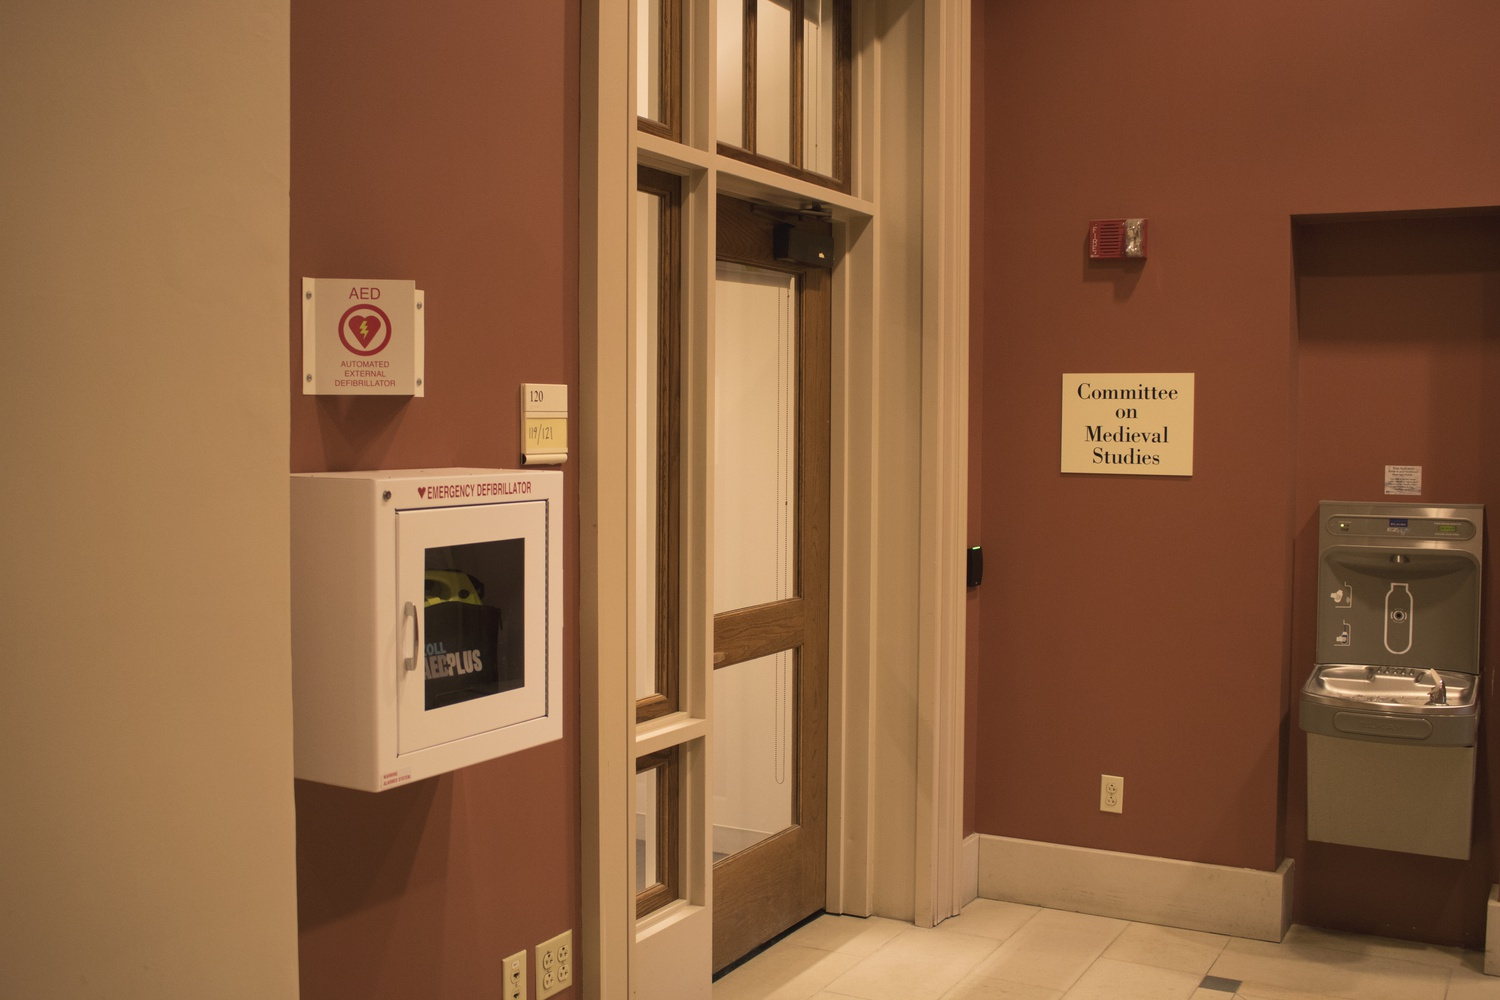 An AED box in the Barker Center. Two College students failed to convince Harvard University Health Services to put naloxone in AED boxes across campus.